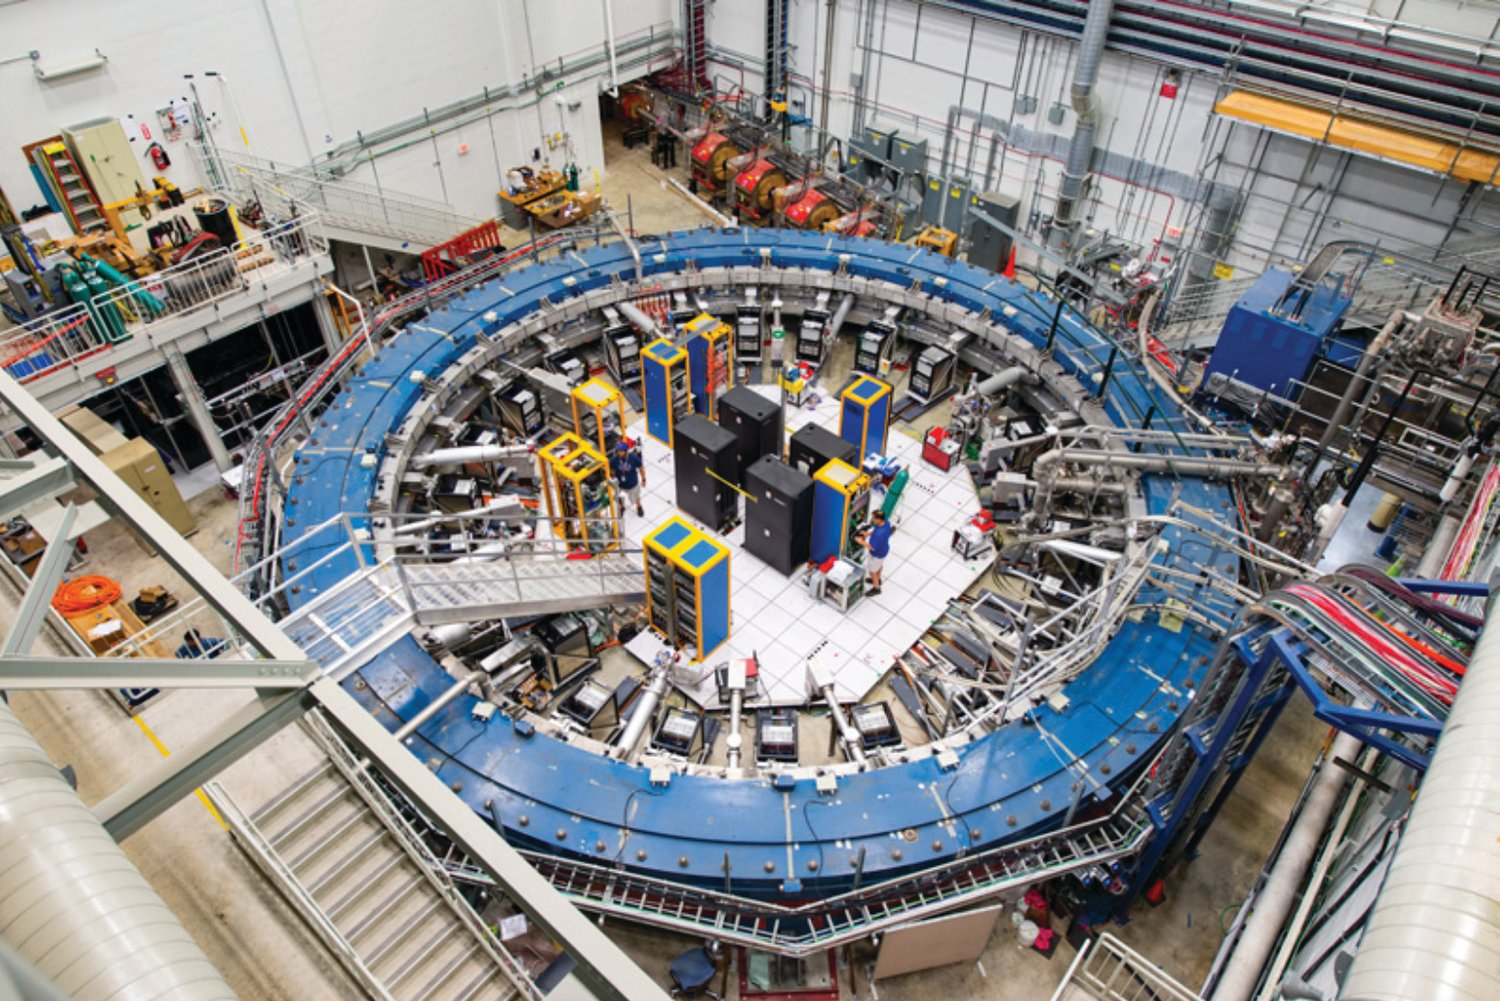 The 50-foot in diameter superconducting magnetic ring at the Fermi National Accelerator Laboratory near Chicago was the centerpiece of a recent experiment with muons, tiny particles that could inform our understanding of the universe.